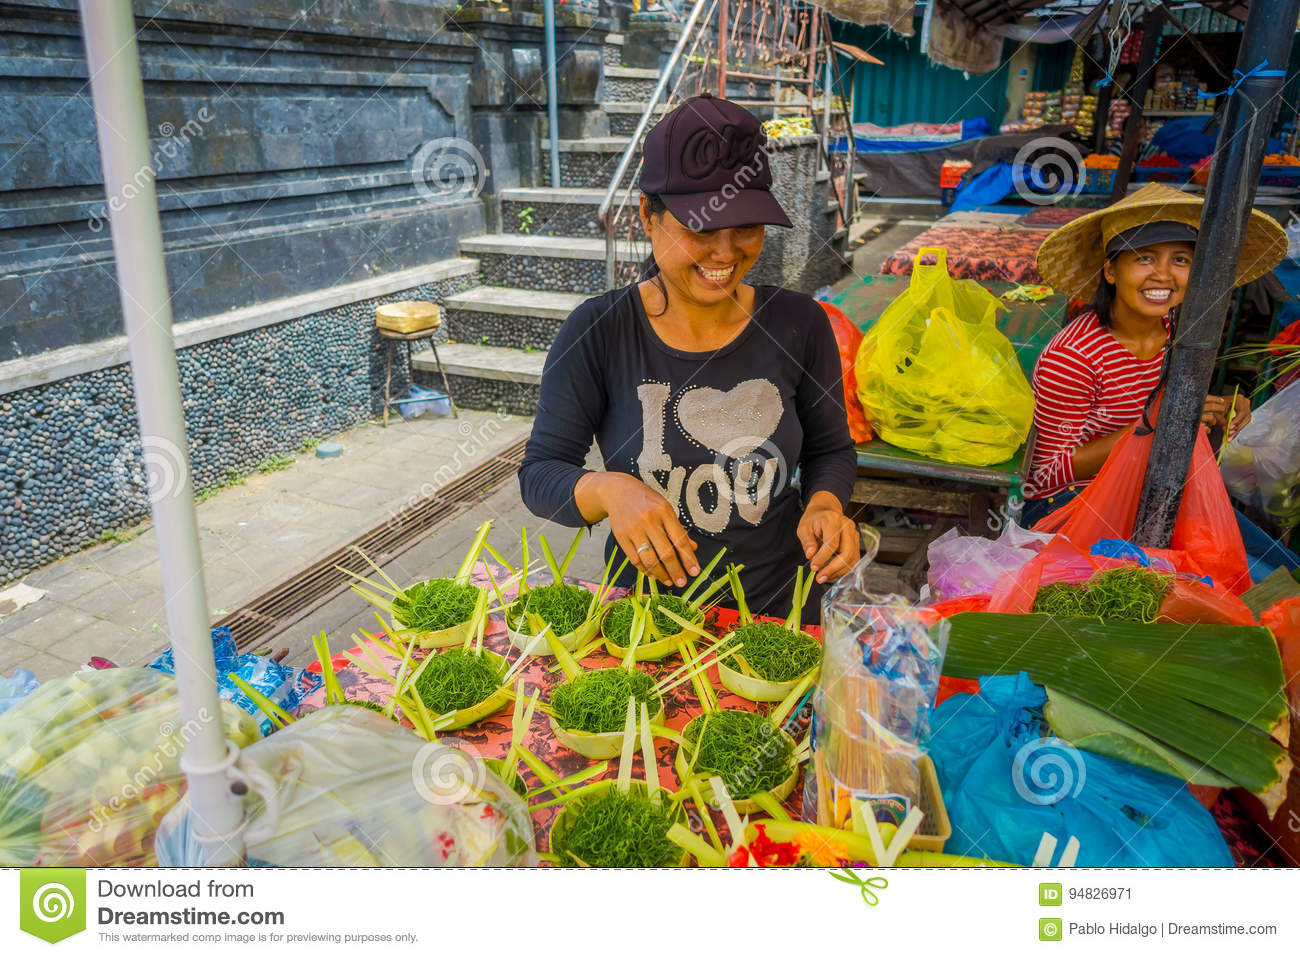 BALI, INDONESIA - MARCH 08, 2017: Unidentified woman do an arrangement of flowers inside of a box made of leafs in a